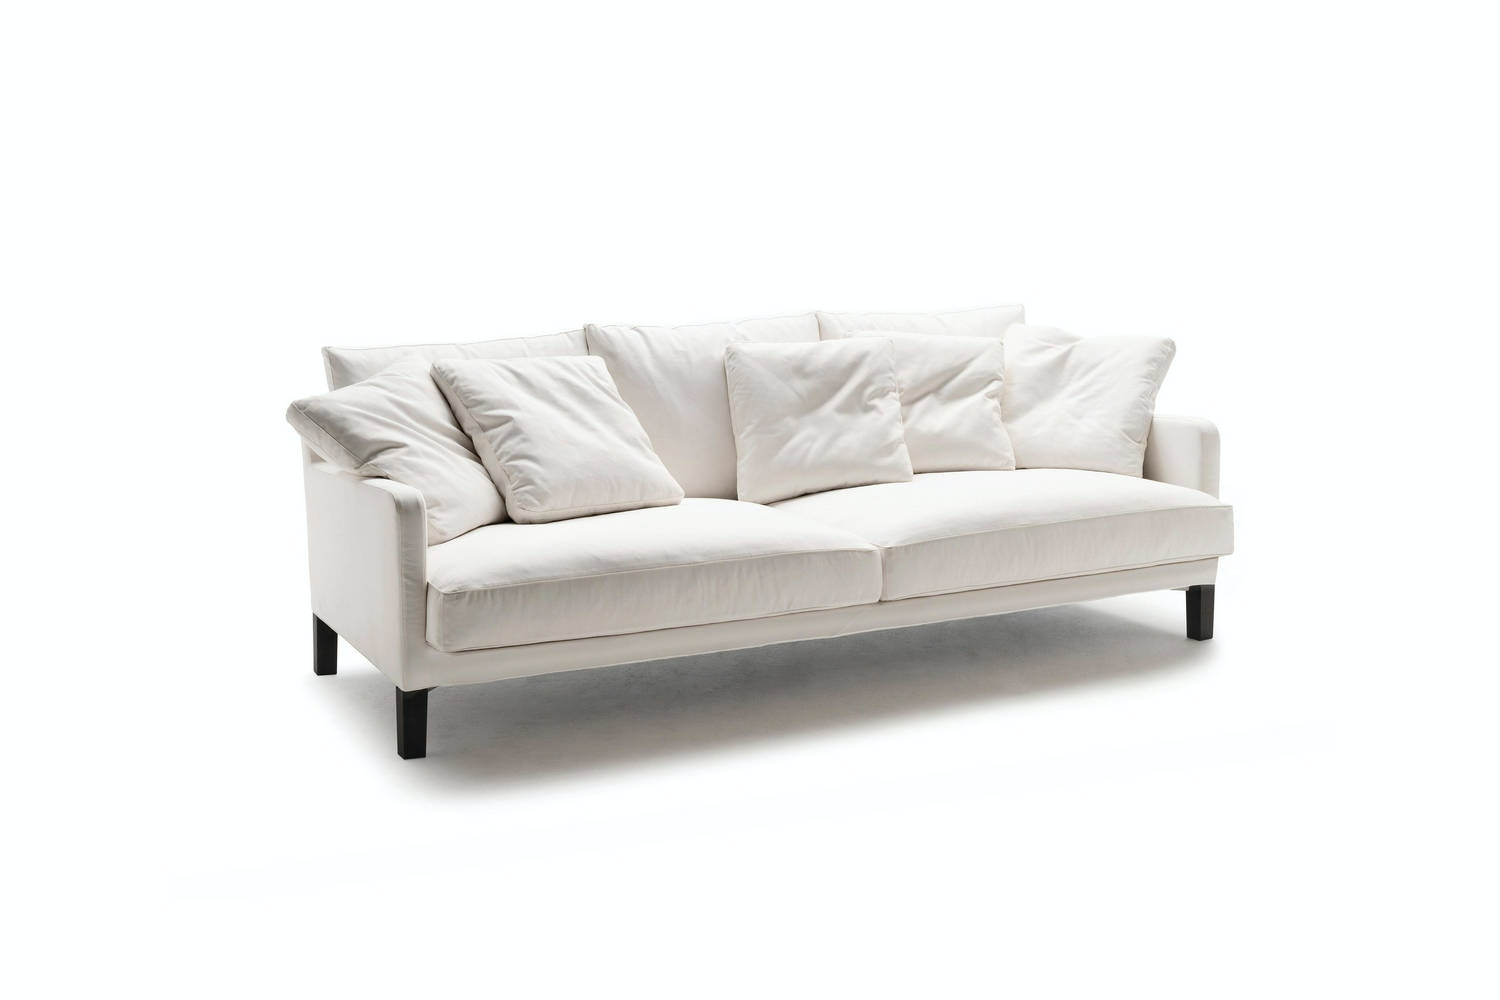 Dumas Sofa by Piero Lissoni for Living Divani